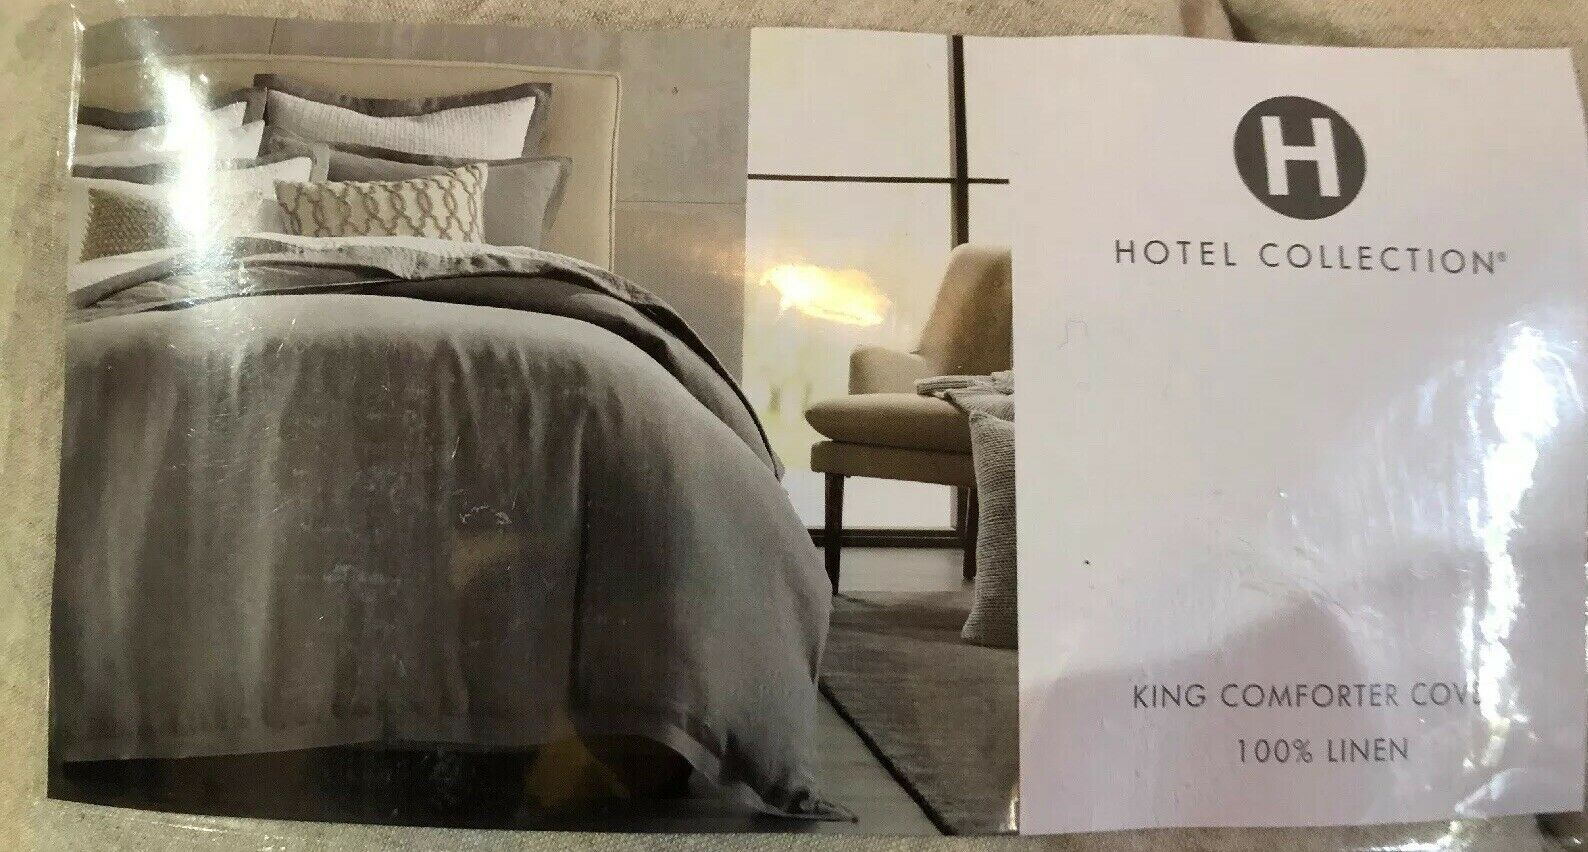 HOTEL COLLECTION KING COMFORTER COVER 100% LINEN PALLADIUM  420